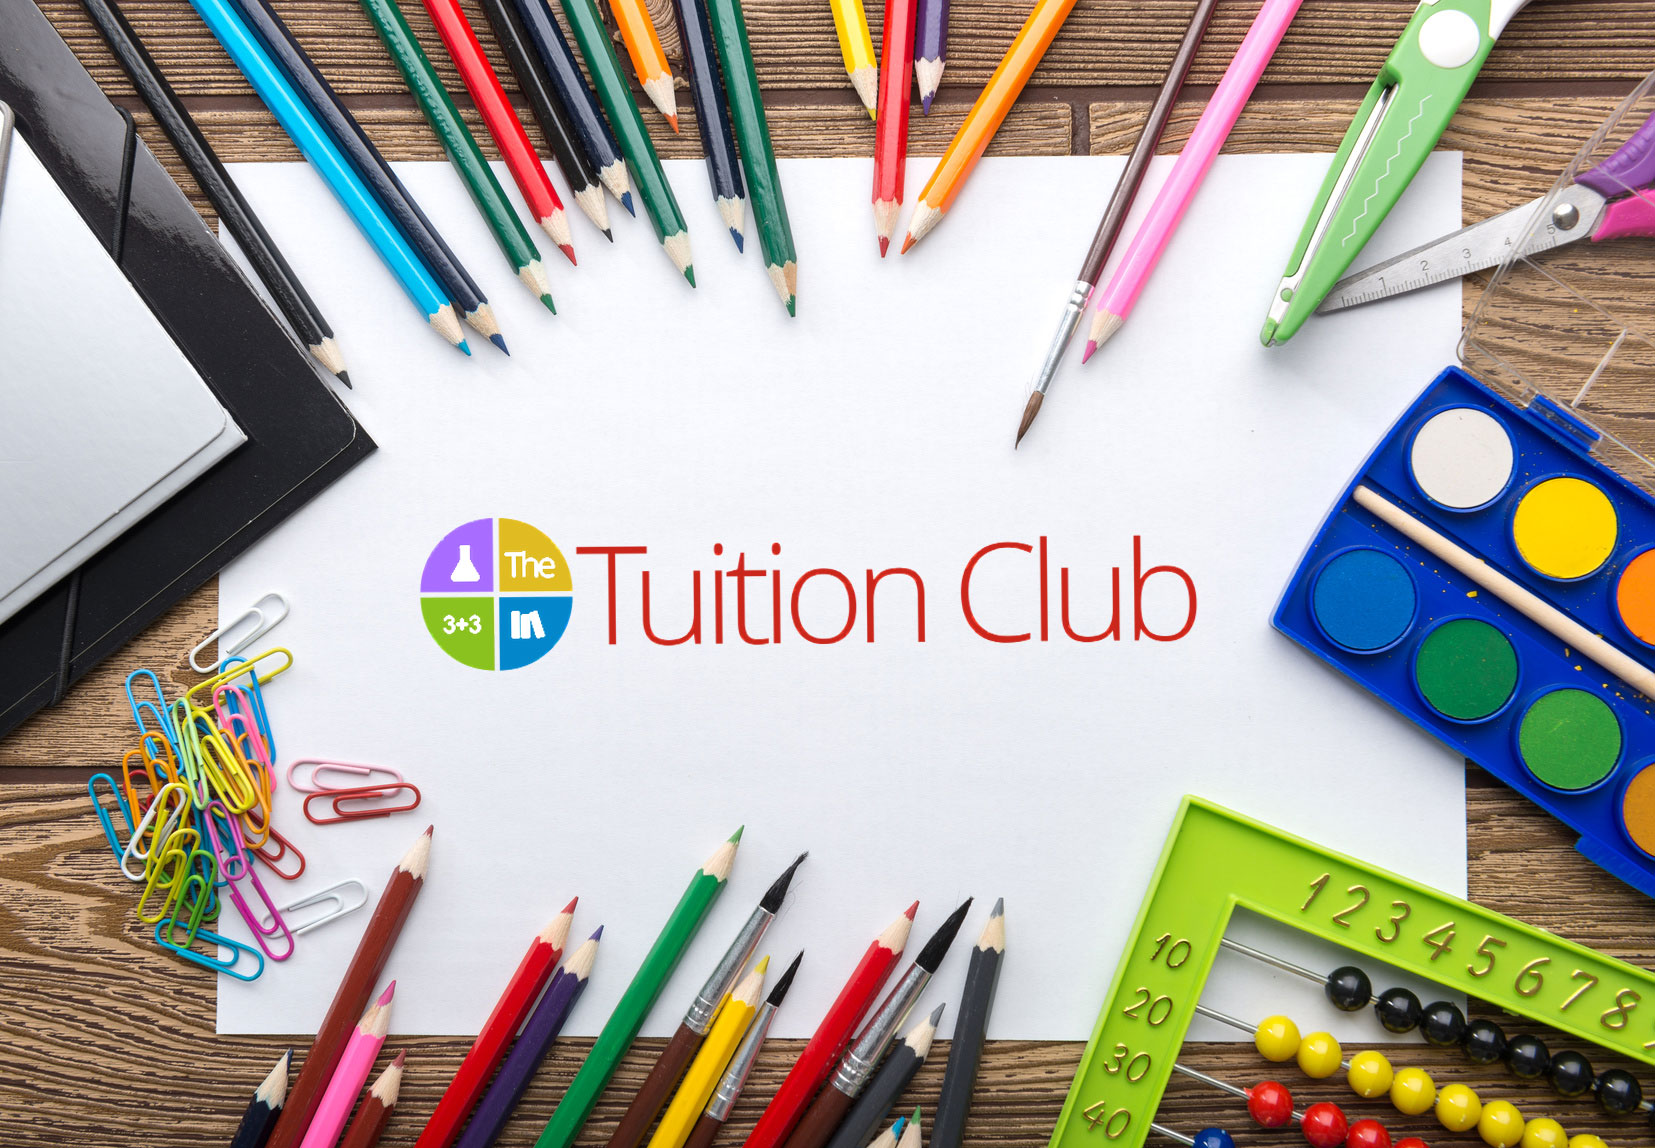 Welcome to The Tuition Club